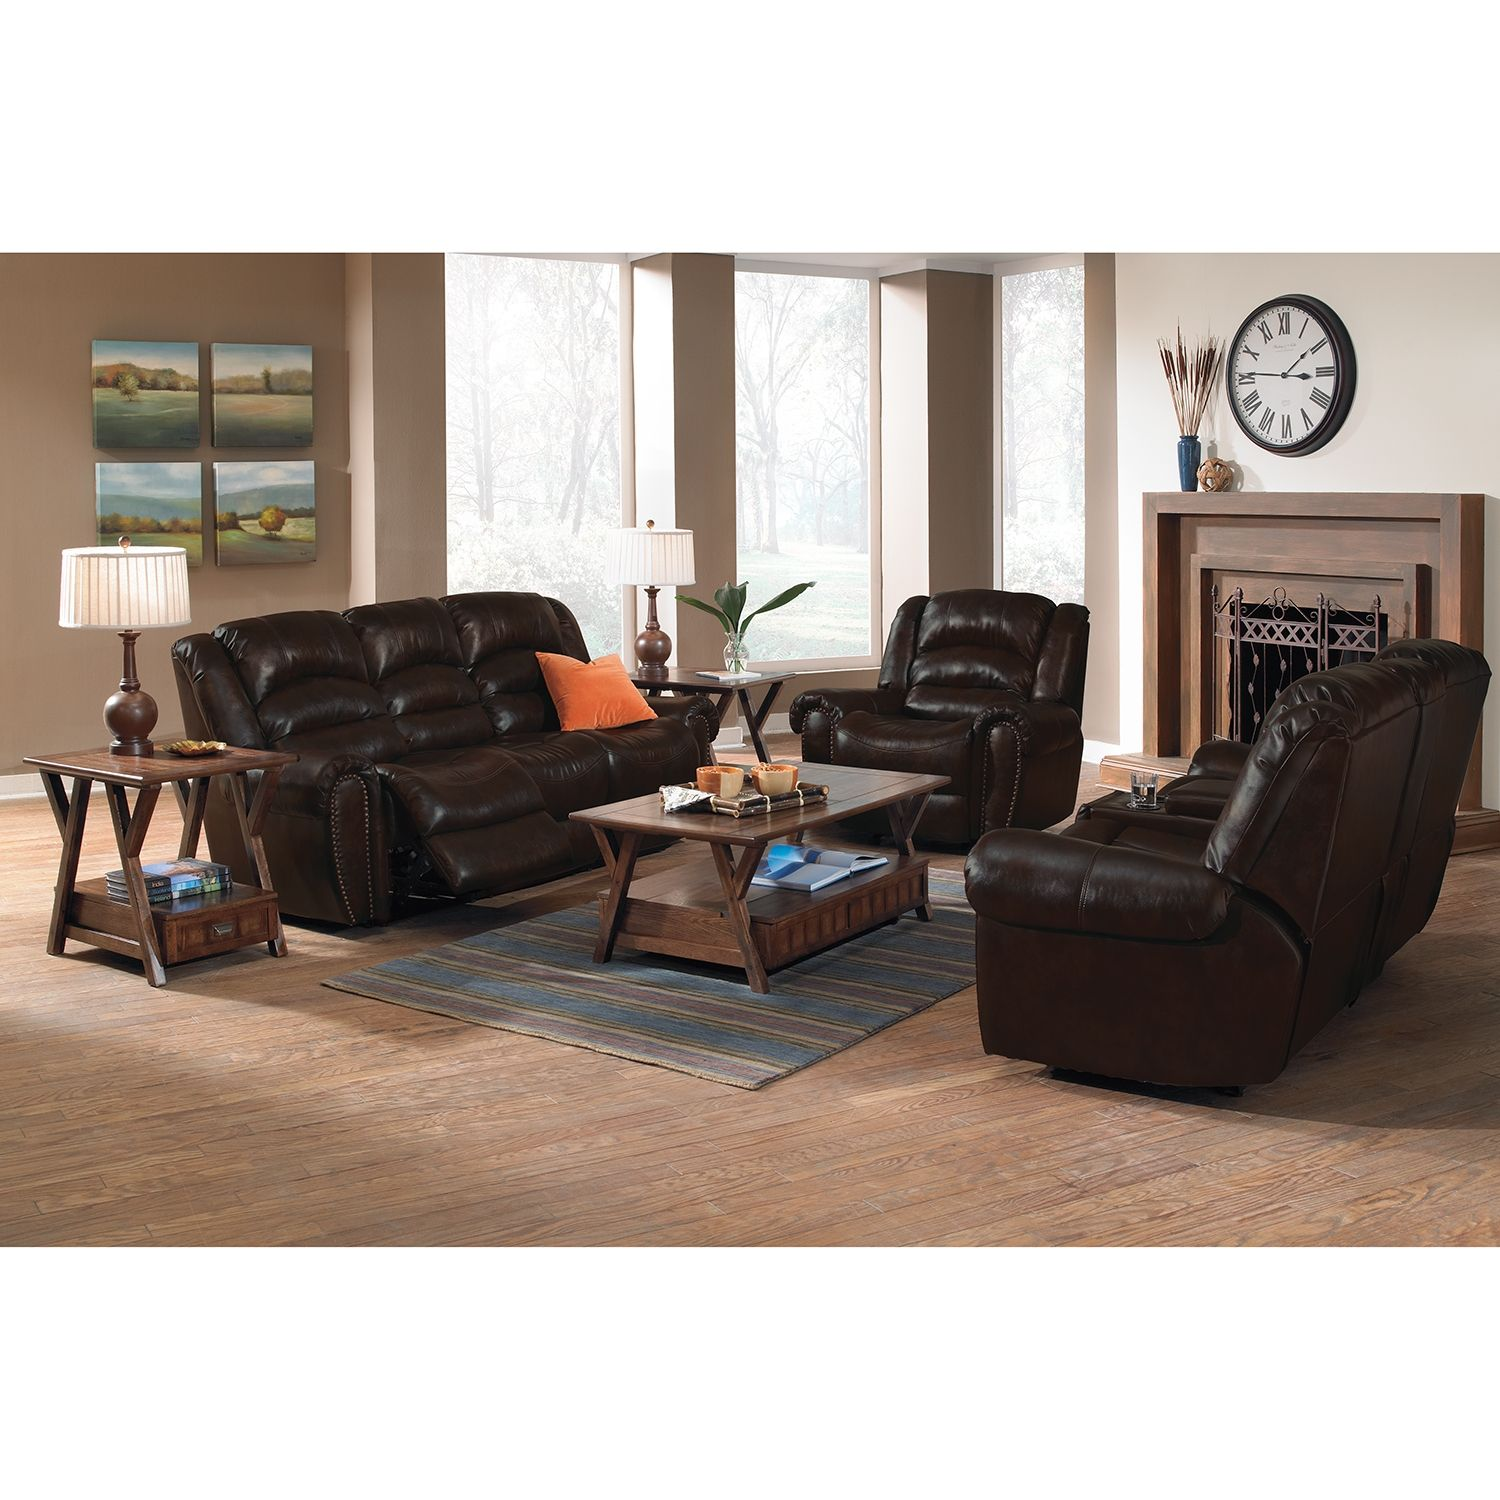 Galveston 3 Pc. Reclining Living Room | American Signature Furniture Part 98